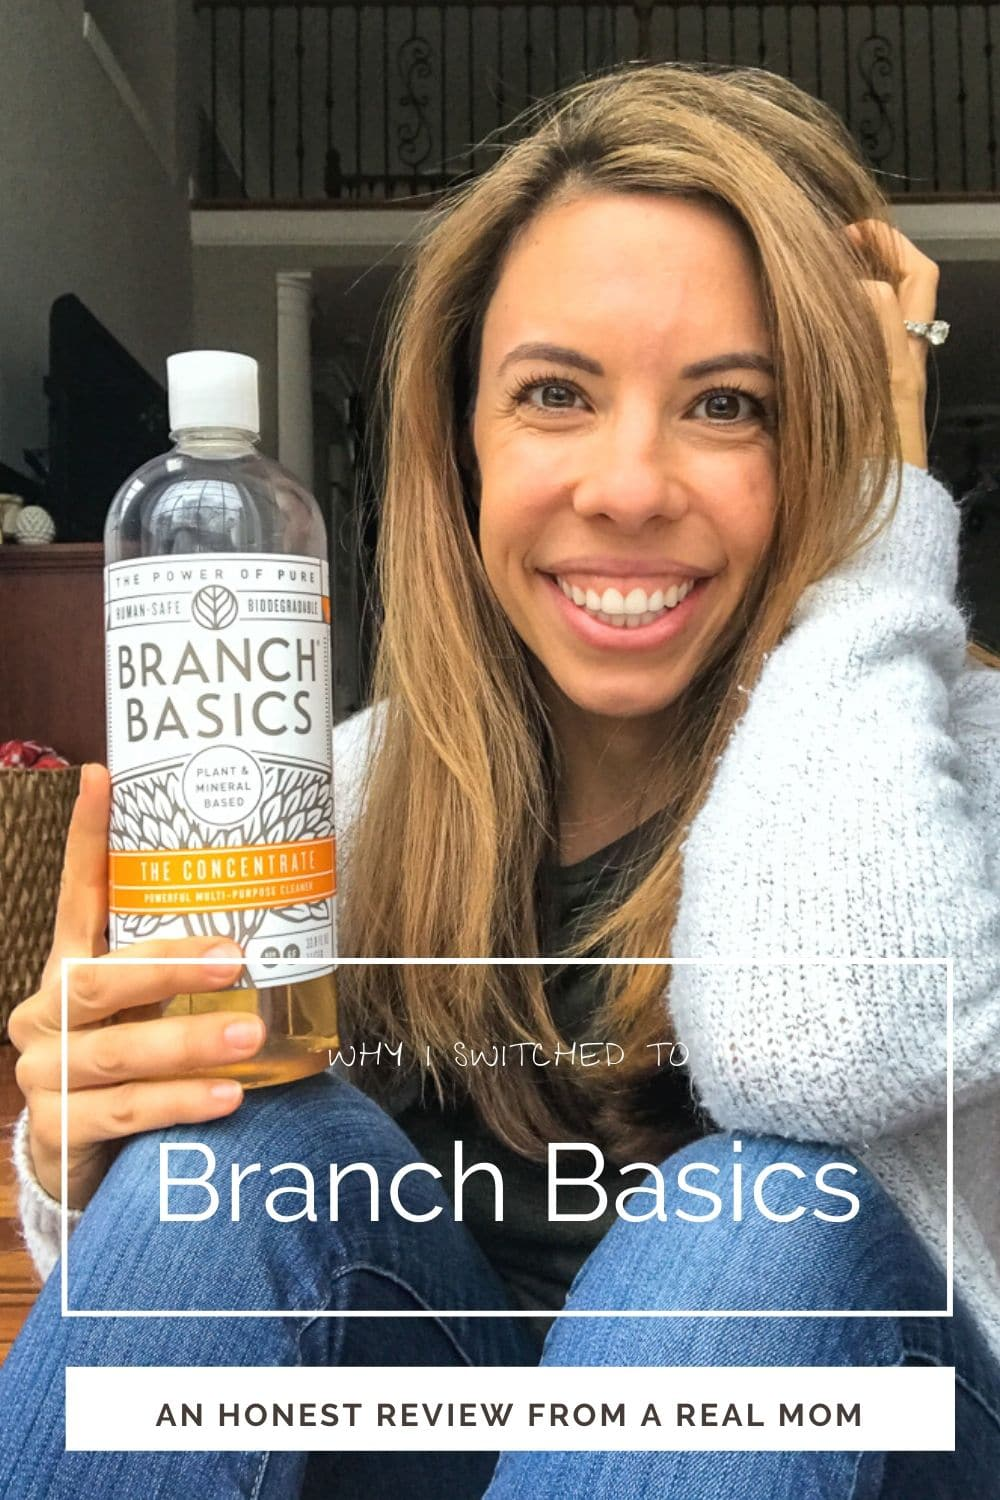 Branch Basics cleaner review